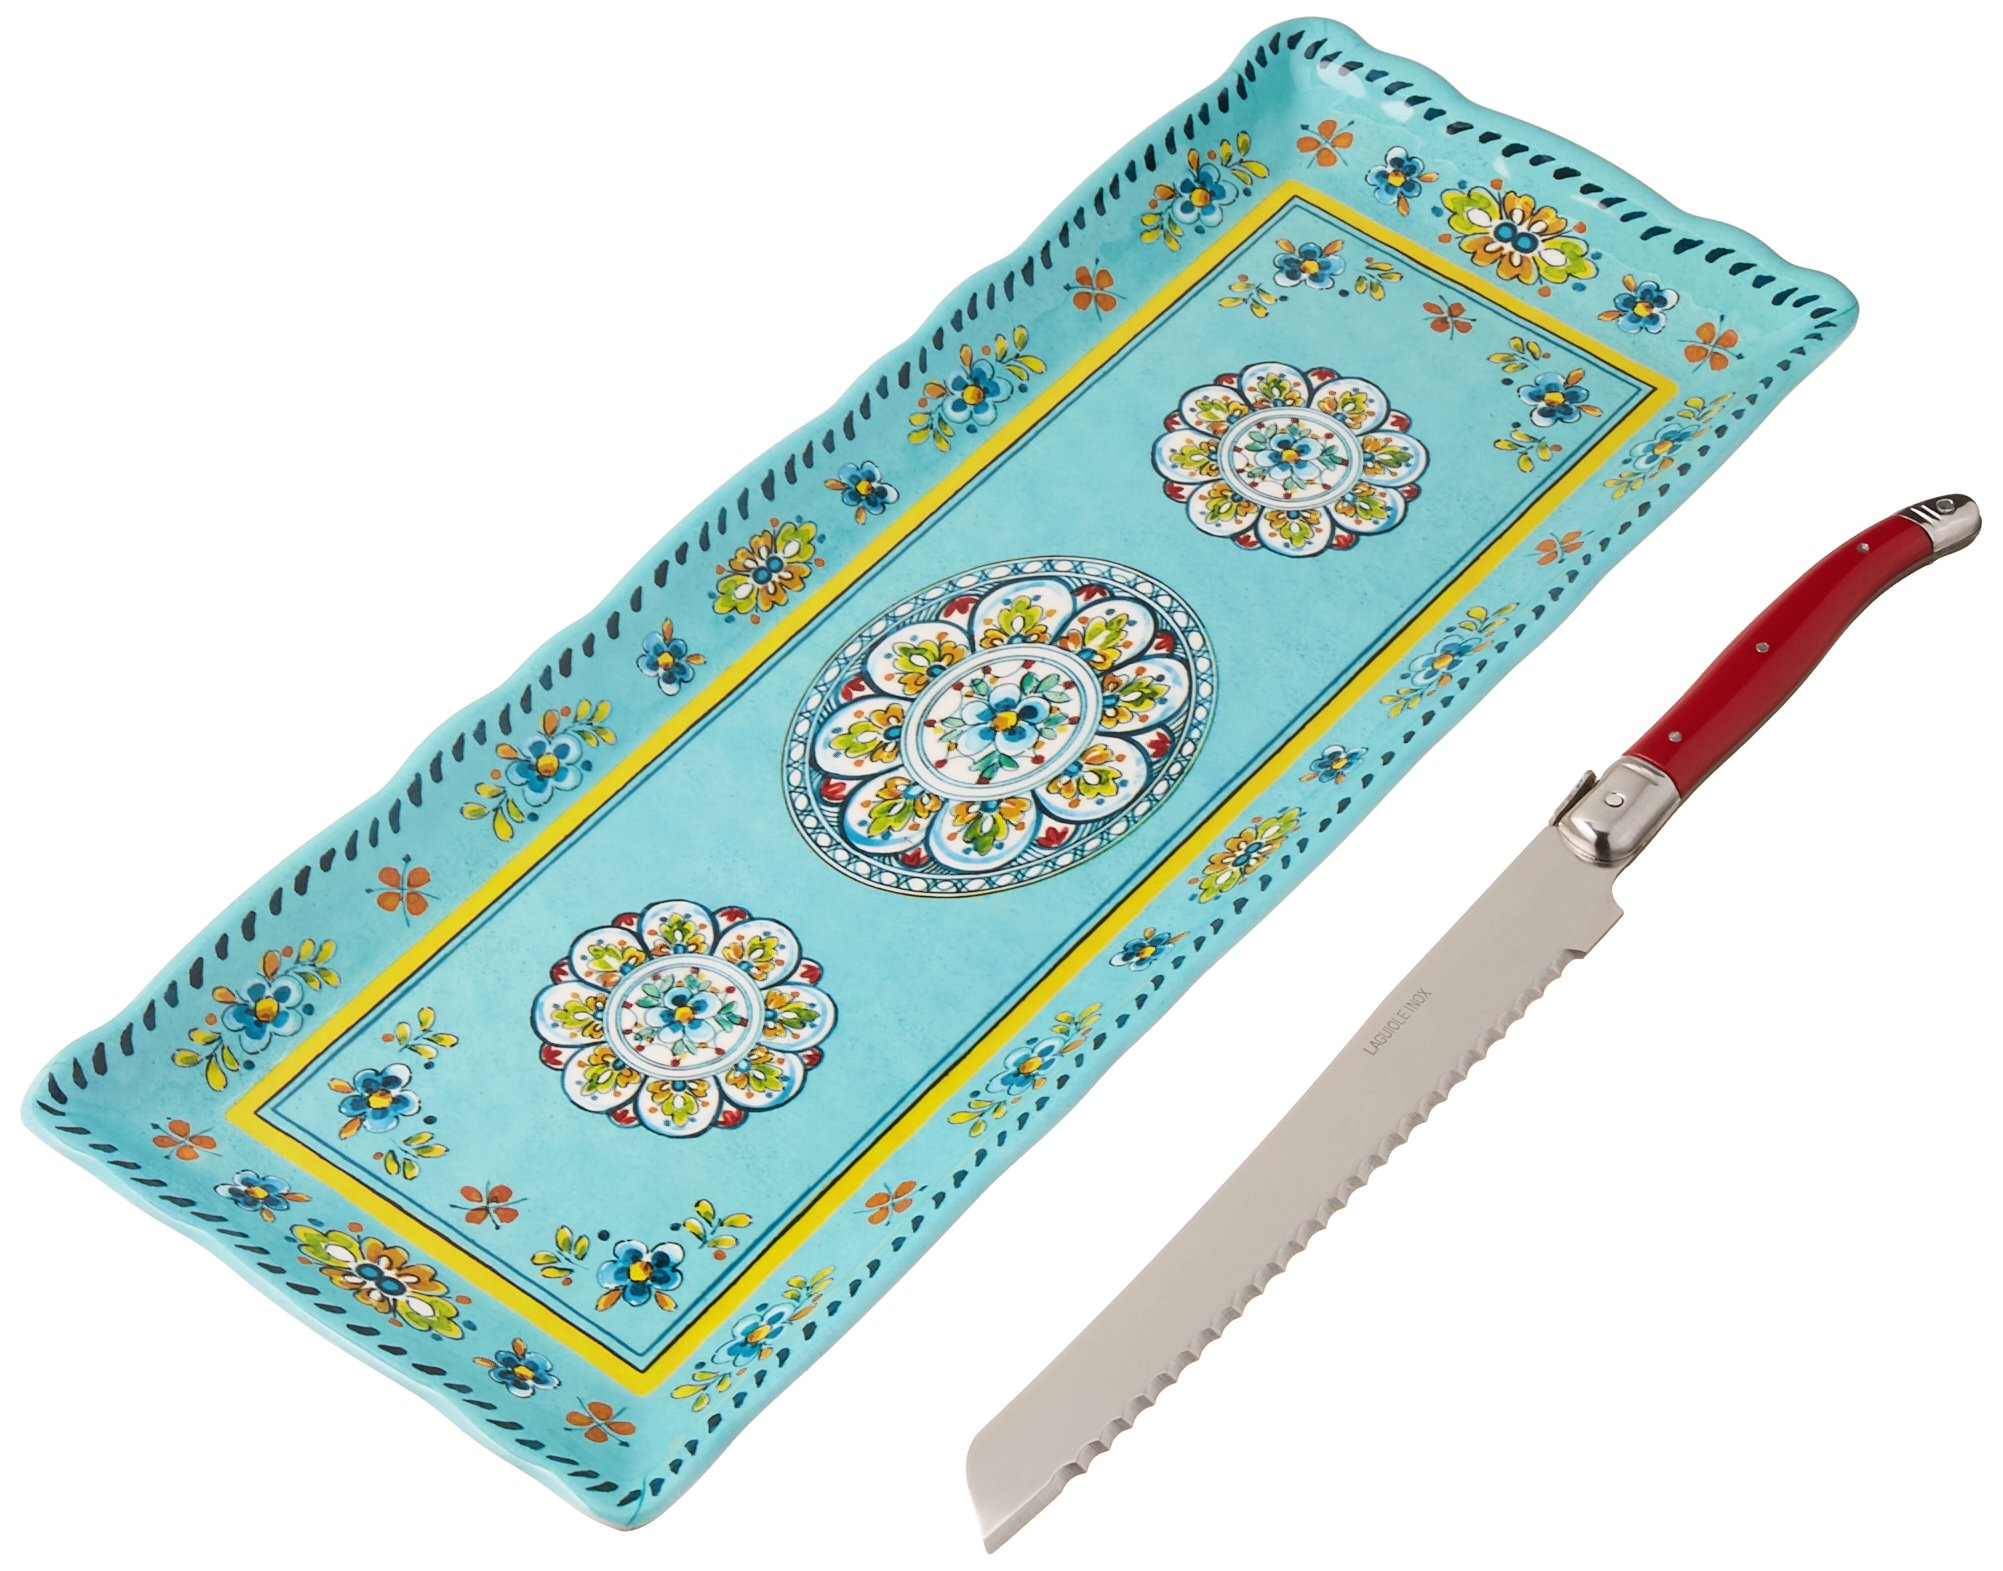 Le Cadeaux Madrid Melamine Baguette Tray and Laguiole Bread Knife Gift Set, Turquoise